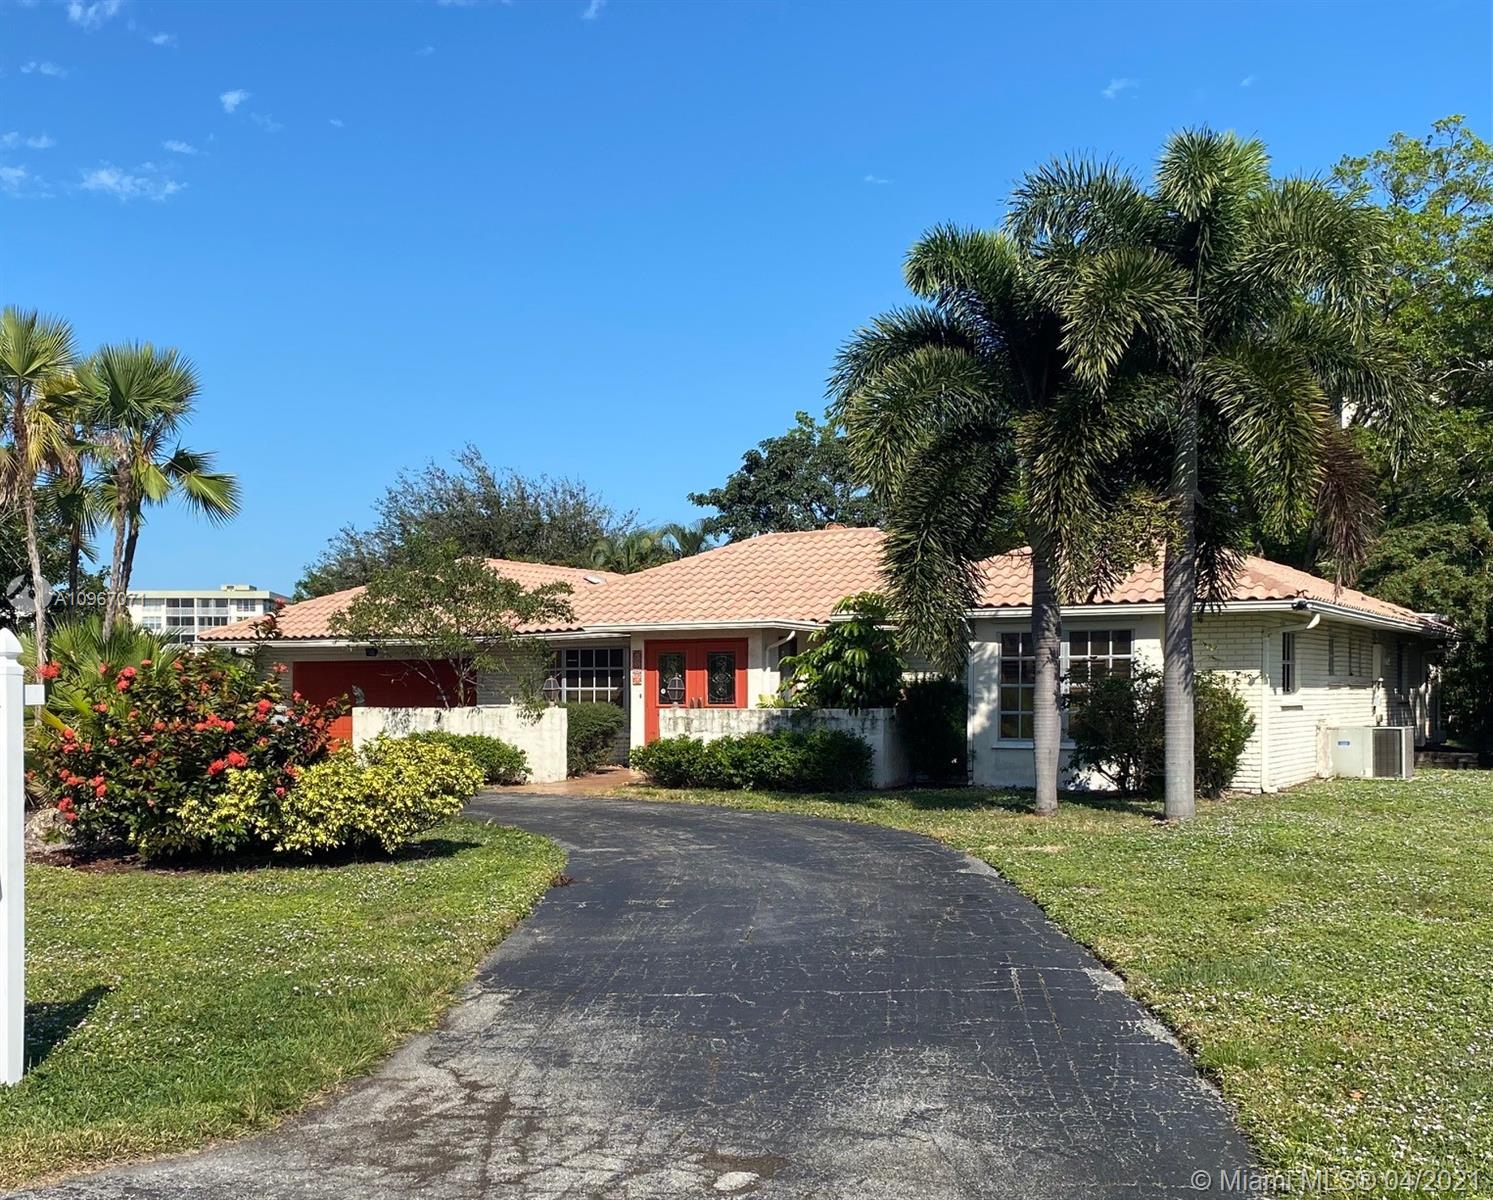 Rare opportunity to own One of Only 26 Single Family waterfront Homes on Estates Drive. Estates Drive is one of Palm-Aire's best kept secrets. Very Serene location surrounded by Beautiful waterfront Homes. Lot size is over 15000 sq. ft. . Walk to the Golf course or to the Isles Casino. Very accessible to I-95 and the Turnpike for easy commuting. This Home is ready for your design and remodel. House is offered AS-IS. OWNER IS pretty FIRM ON PRICE.